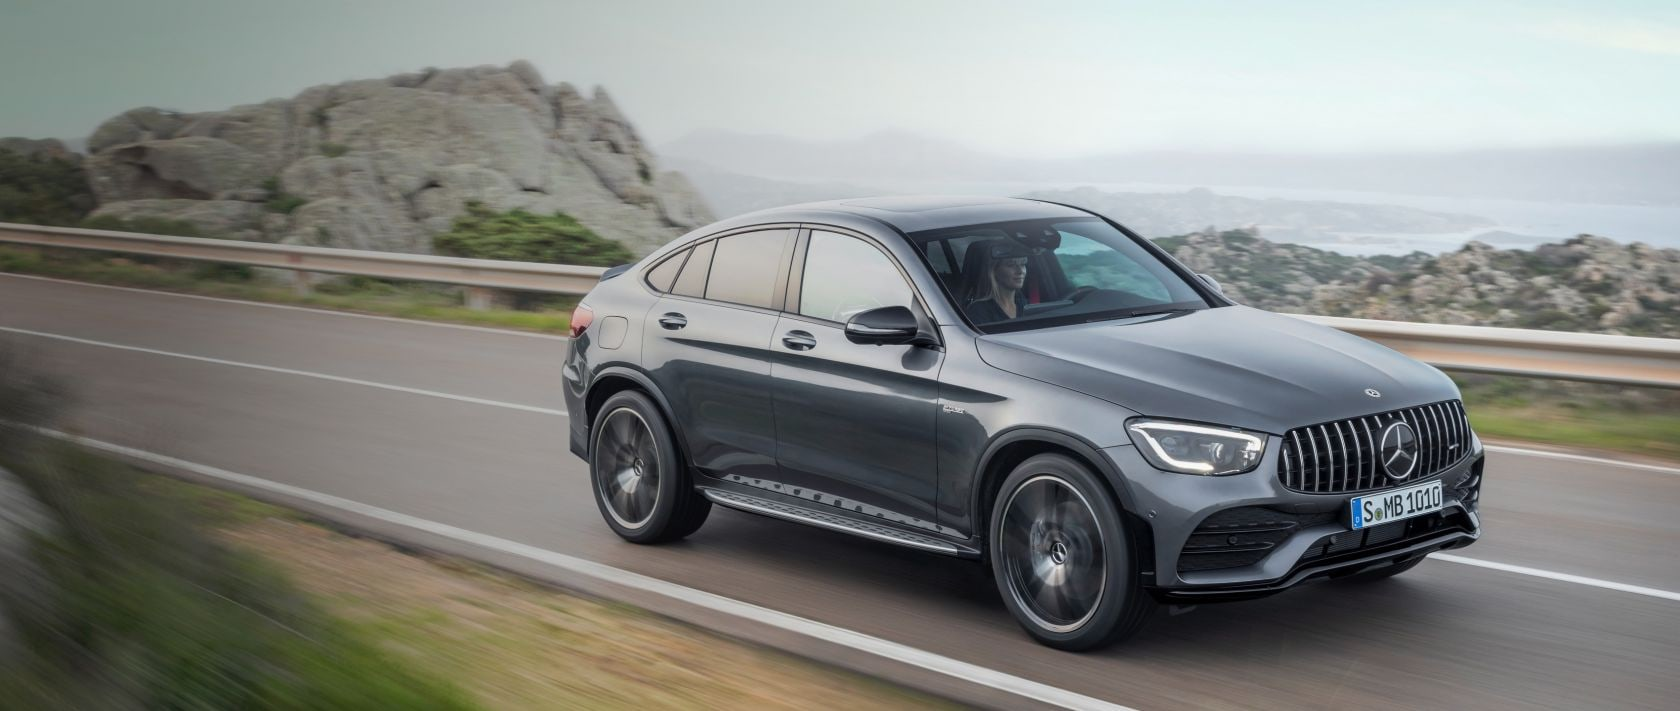 The 2019 Mercedes-AMG GLC 43 4MATIC Coupé (C 253) in selenite grey on a coastal road.